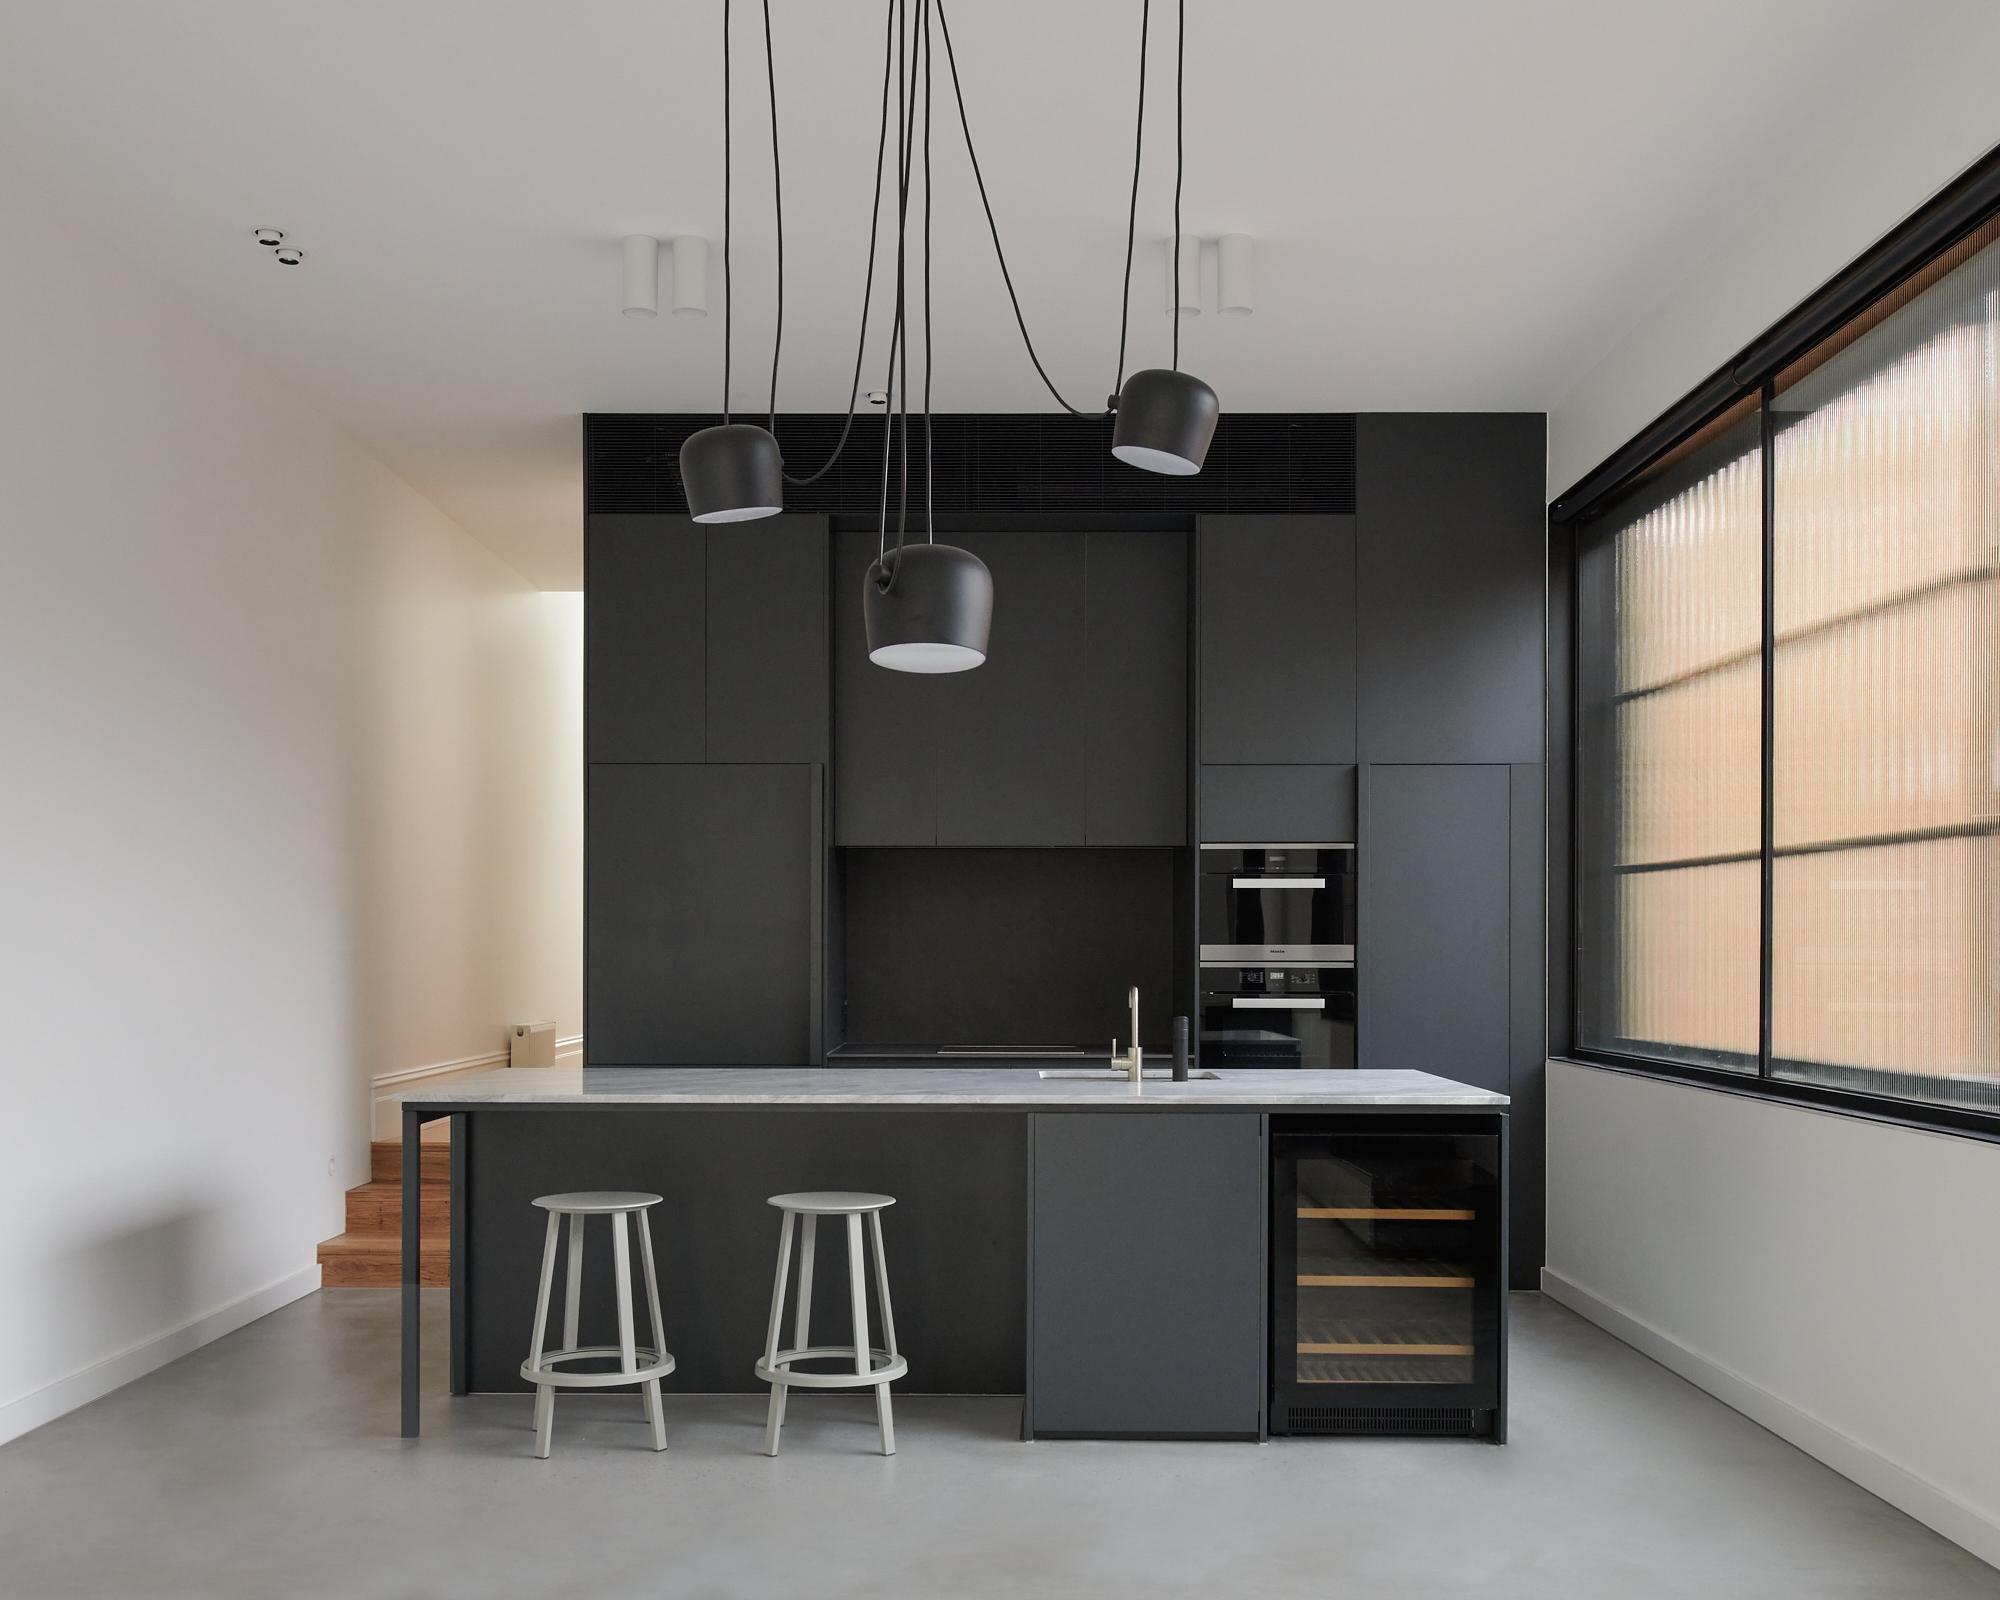 Blessington Avenue by Eclipse Projects and Wellard Architects